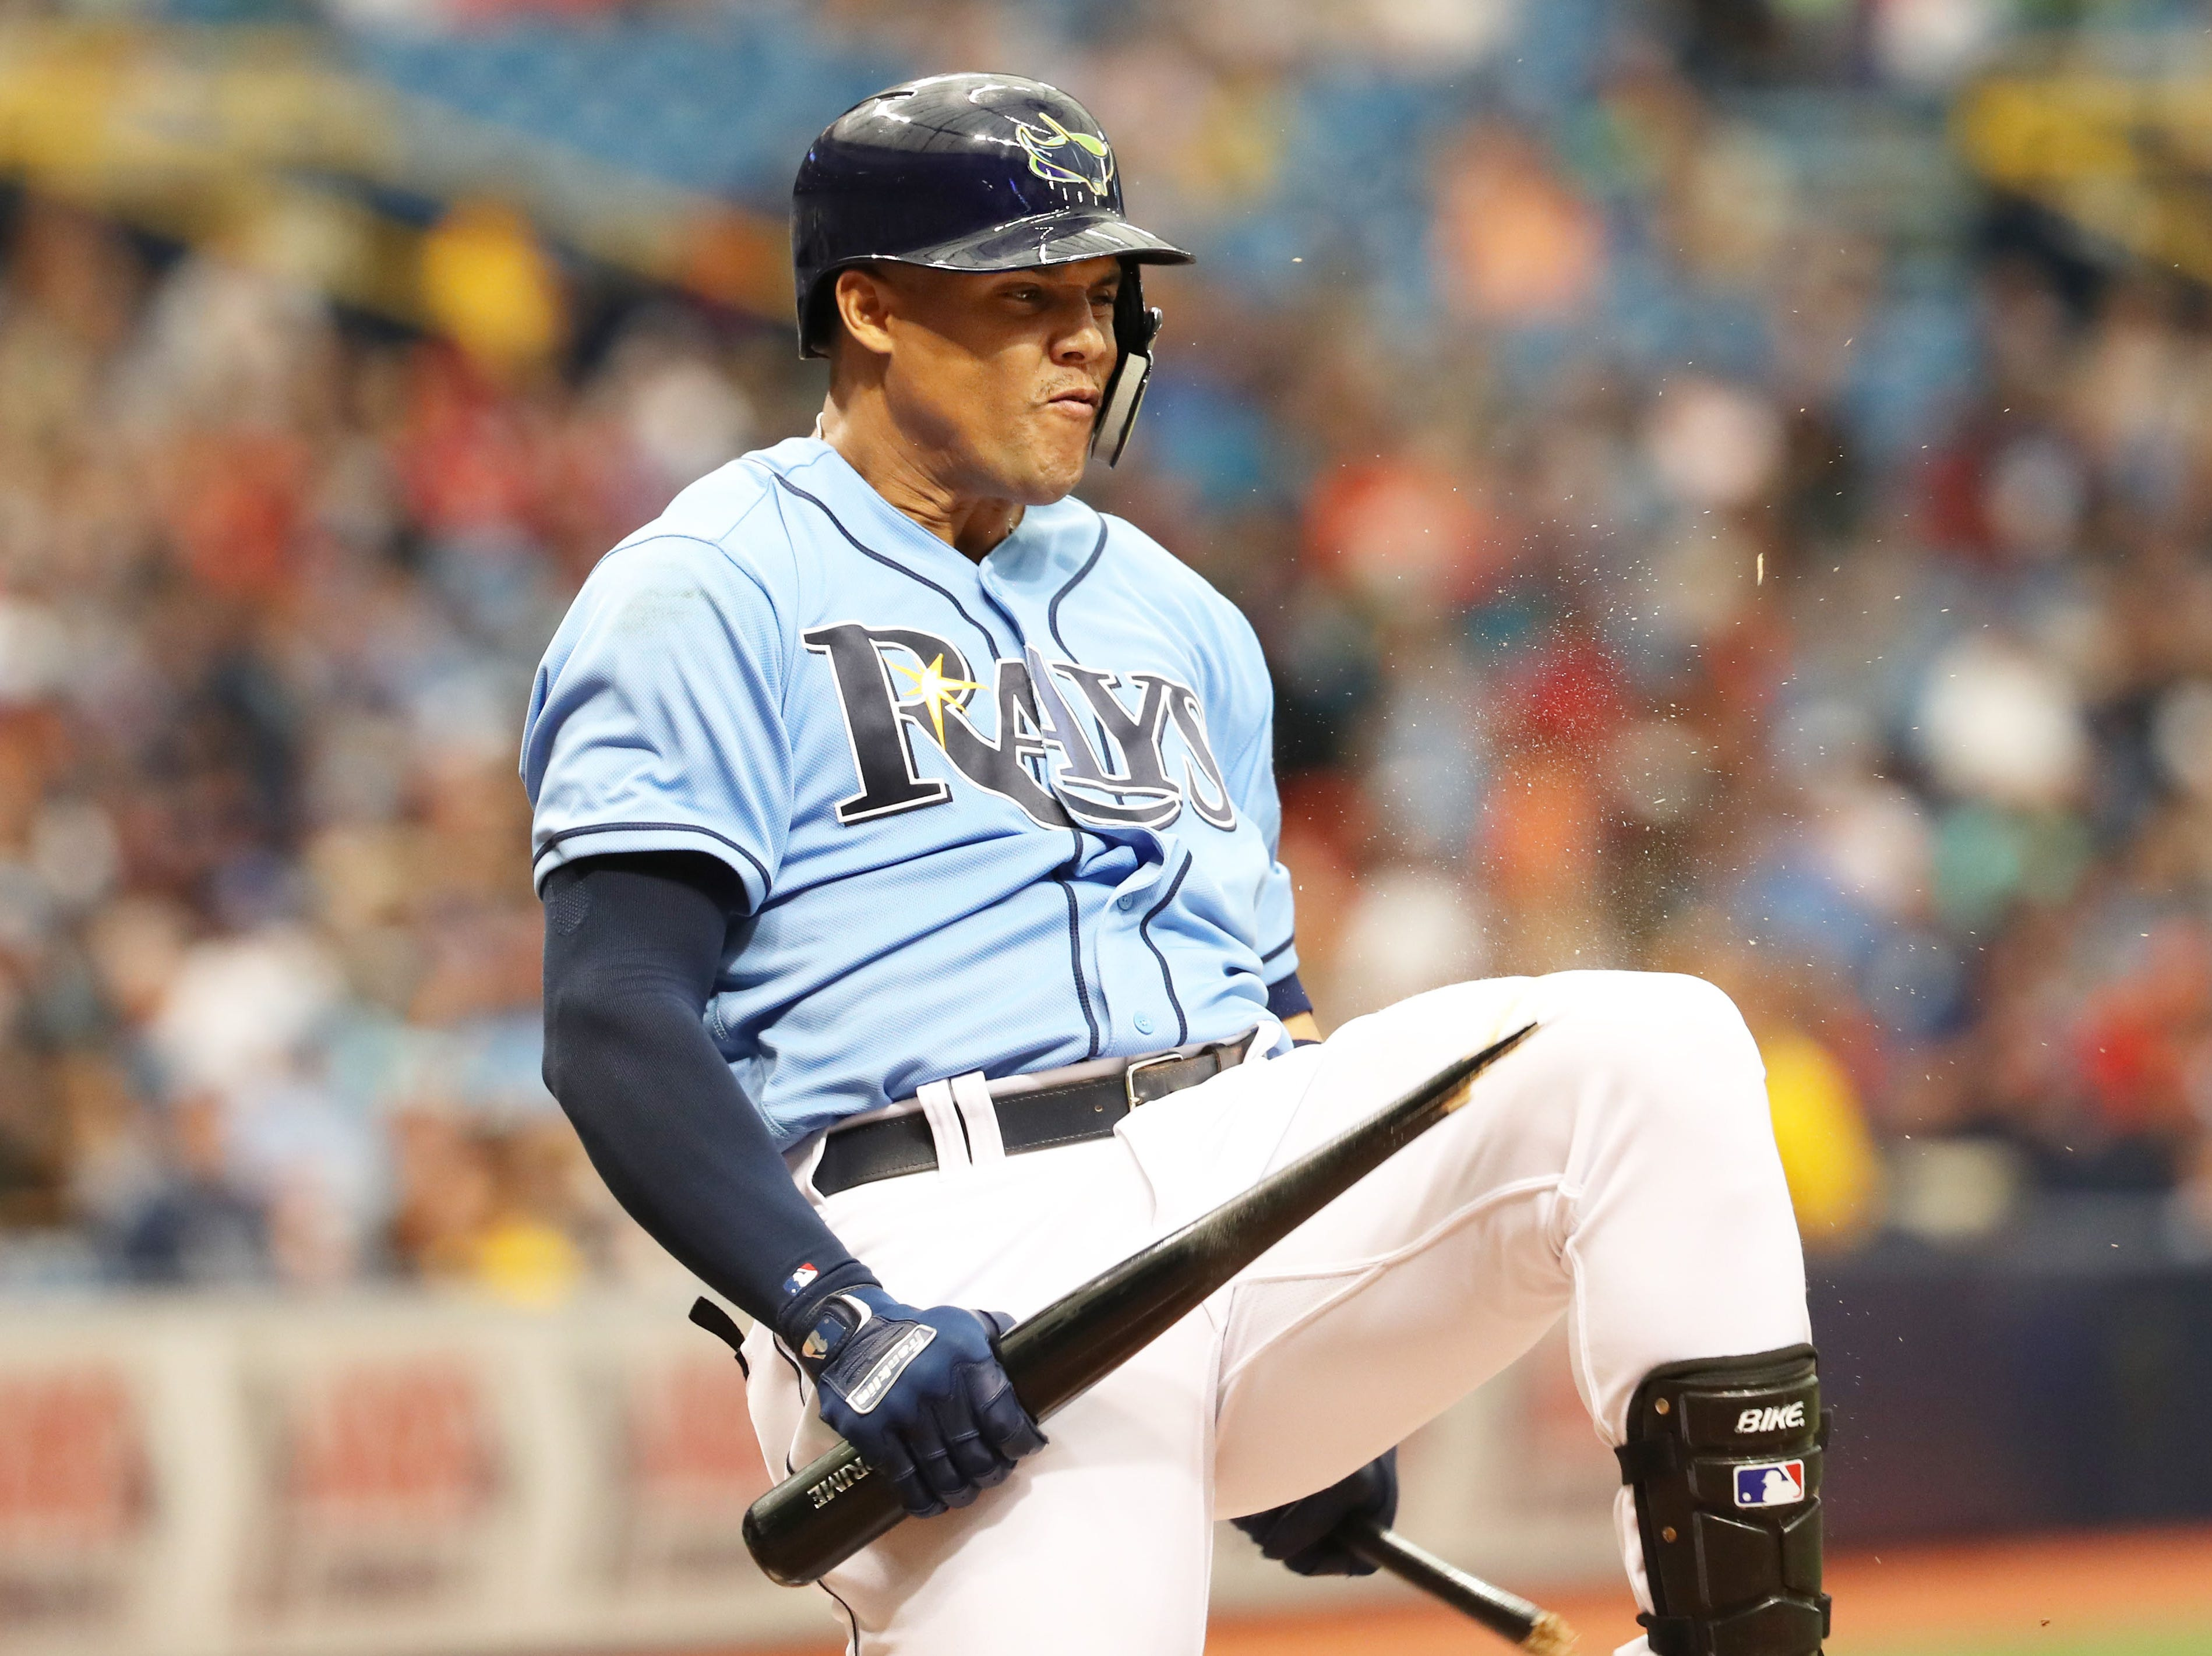 April 22: Tampa Bay Rays right fielder Carlos Gomez (27) breaks his bat over his knee after striking out during the fifth inning against the Minnesota Twins at Tropicana Field.